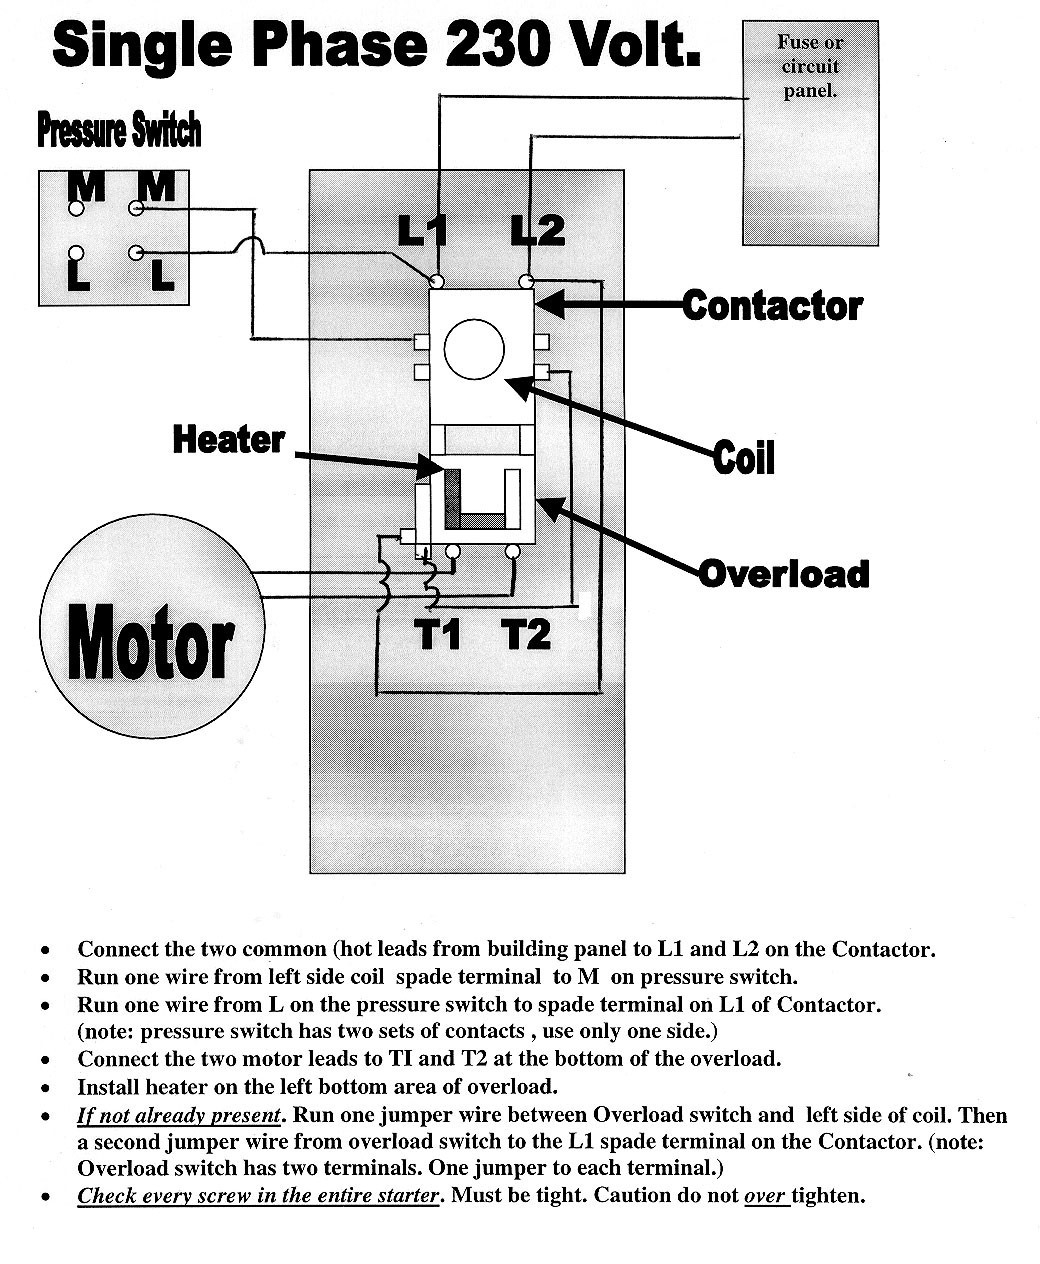 240v motor wiring diagram single phase headlight switch motorcycle collection